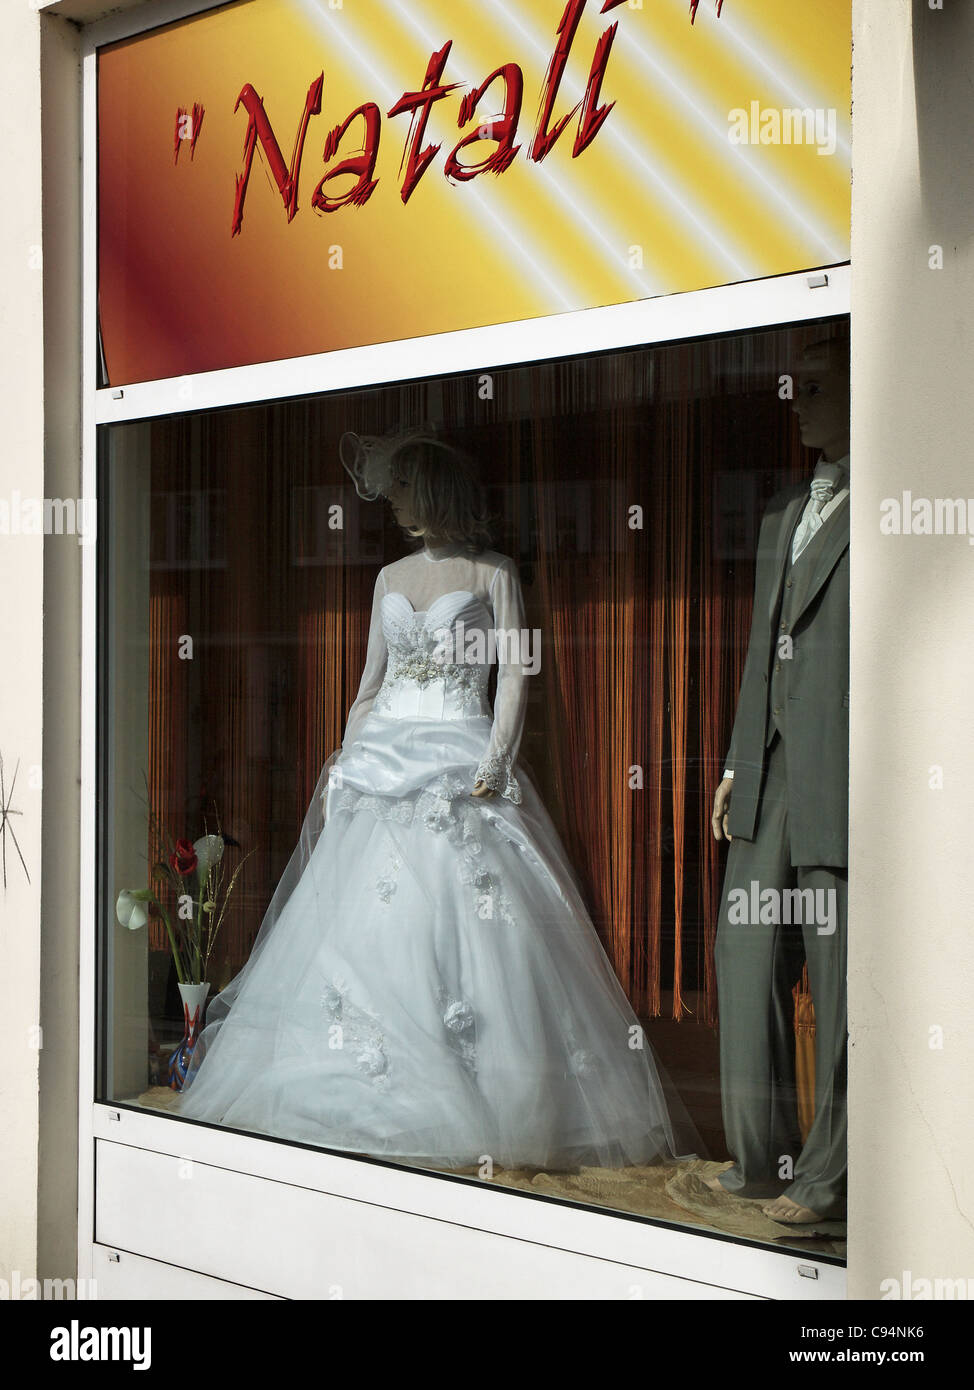 Bridal gown in a shop window in Hamburg, Germany - Stock Image